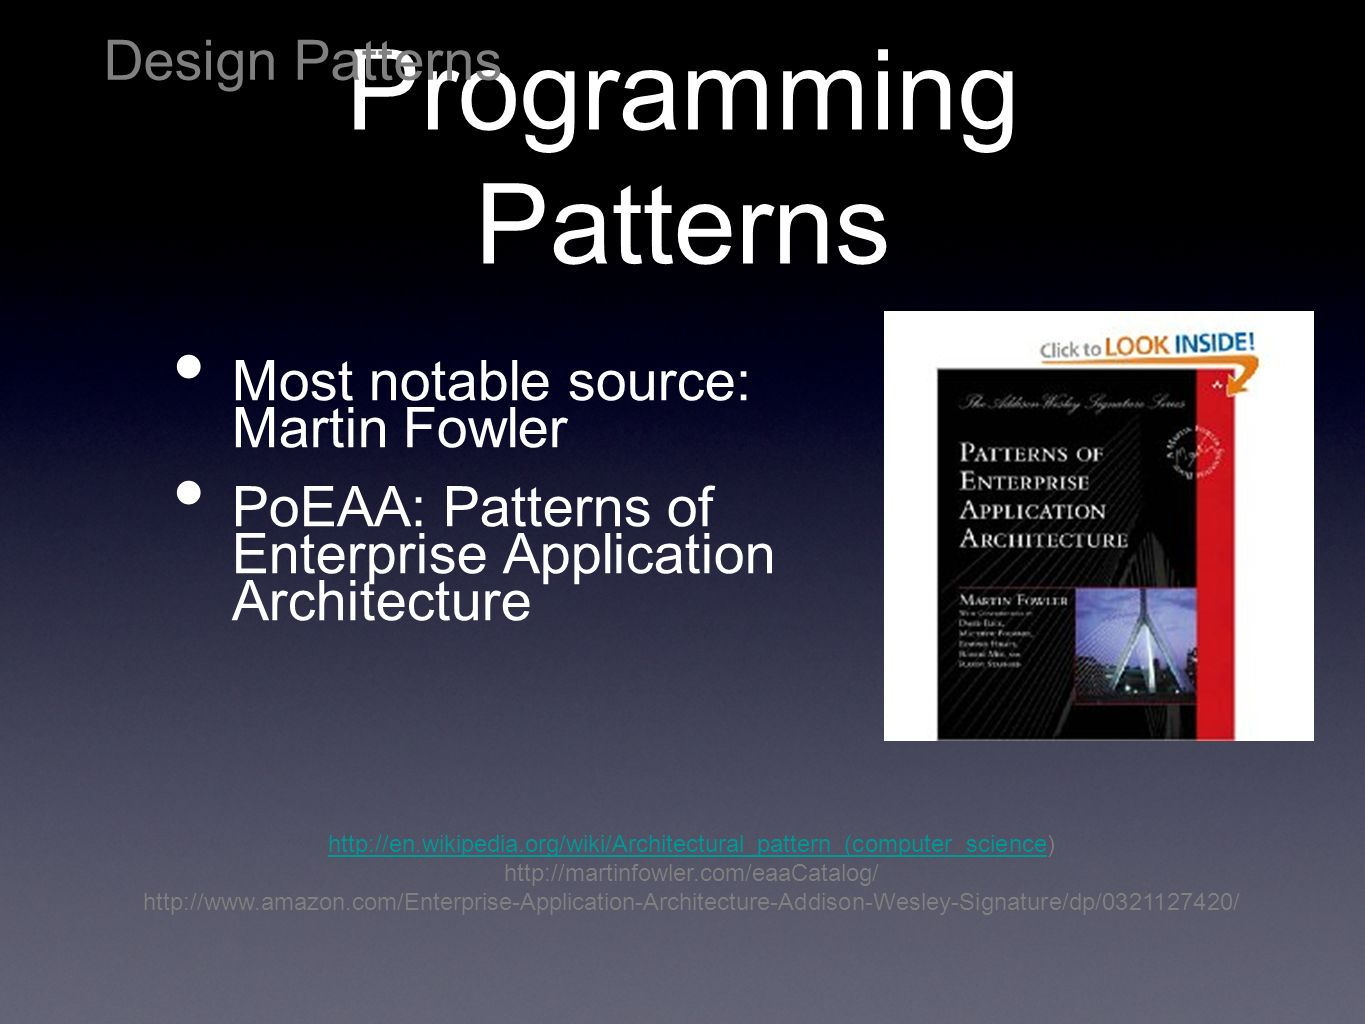 Programming Patterns Most notable source: Martin Fowler PoEAA: Patterns of Enterprise Application Architecture Design Patterns http://en.wikipedia.org/wiki/Architectural_pattern_(computer_sciencehttp://en.wikipedia.org/wiki/Architectural_pattern_(computer_science) http://martinfowler.com/eaaCatalog/ http://www.amazon.com/Enterprise-Application-Architecture-Addison-Wesley-Signature/dp/0321127420/